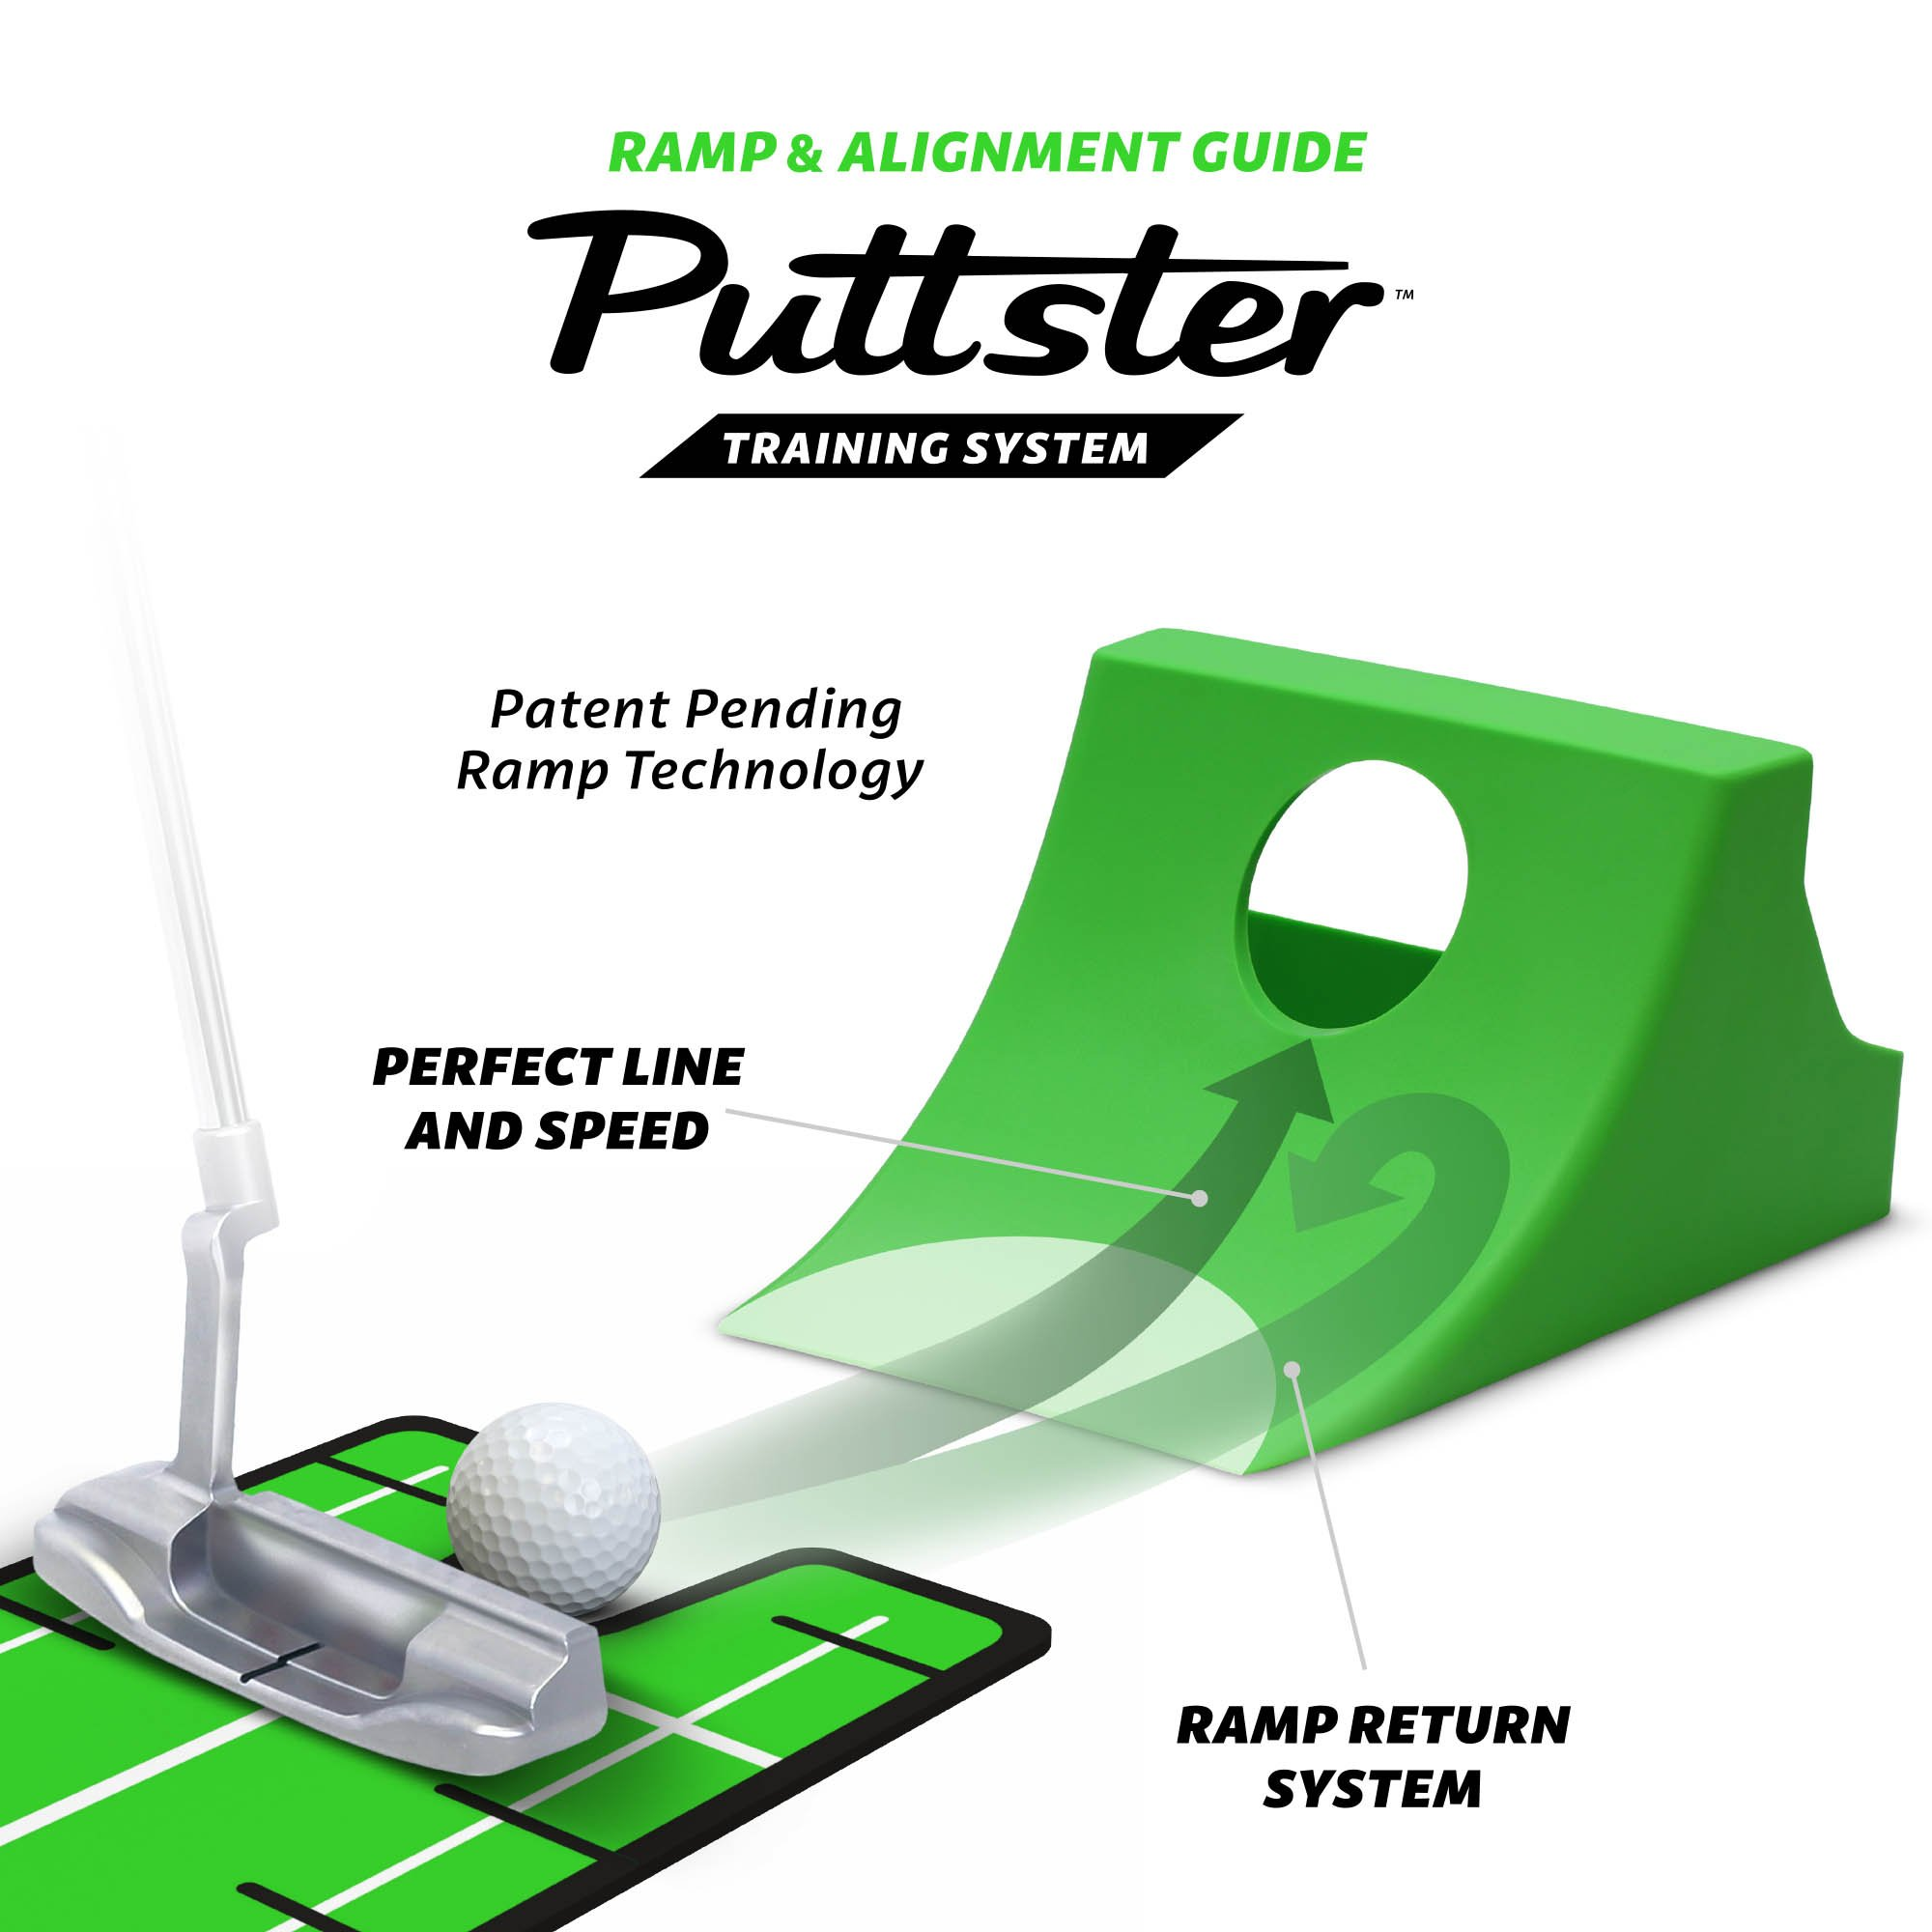 GoSports Puttster Golf Putting Training Aid - Alignment Guide with Cup Ramp Return System for Indoor or Outdoor Practice by GoSports (Image #4)